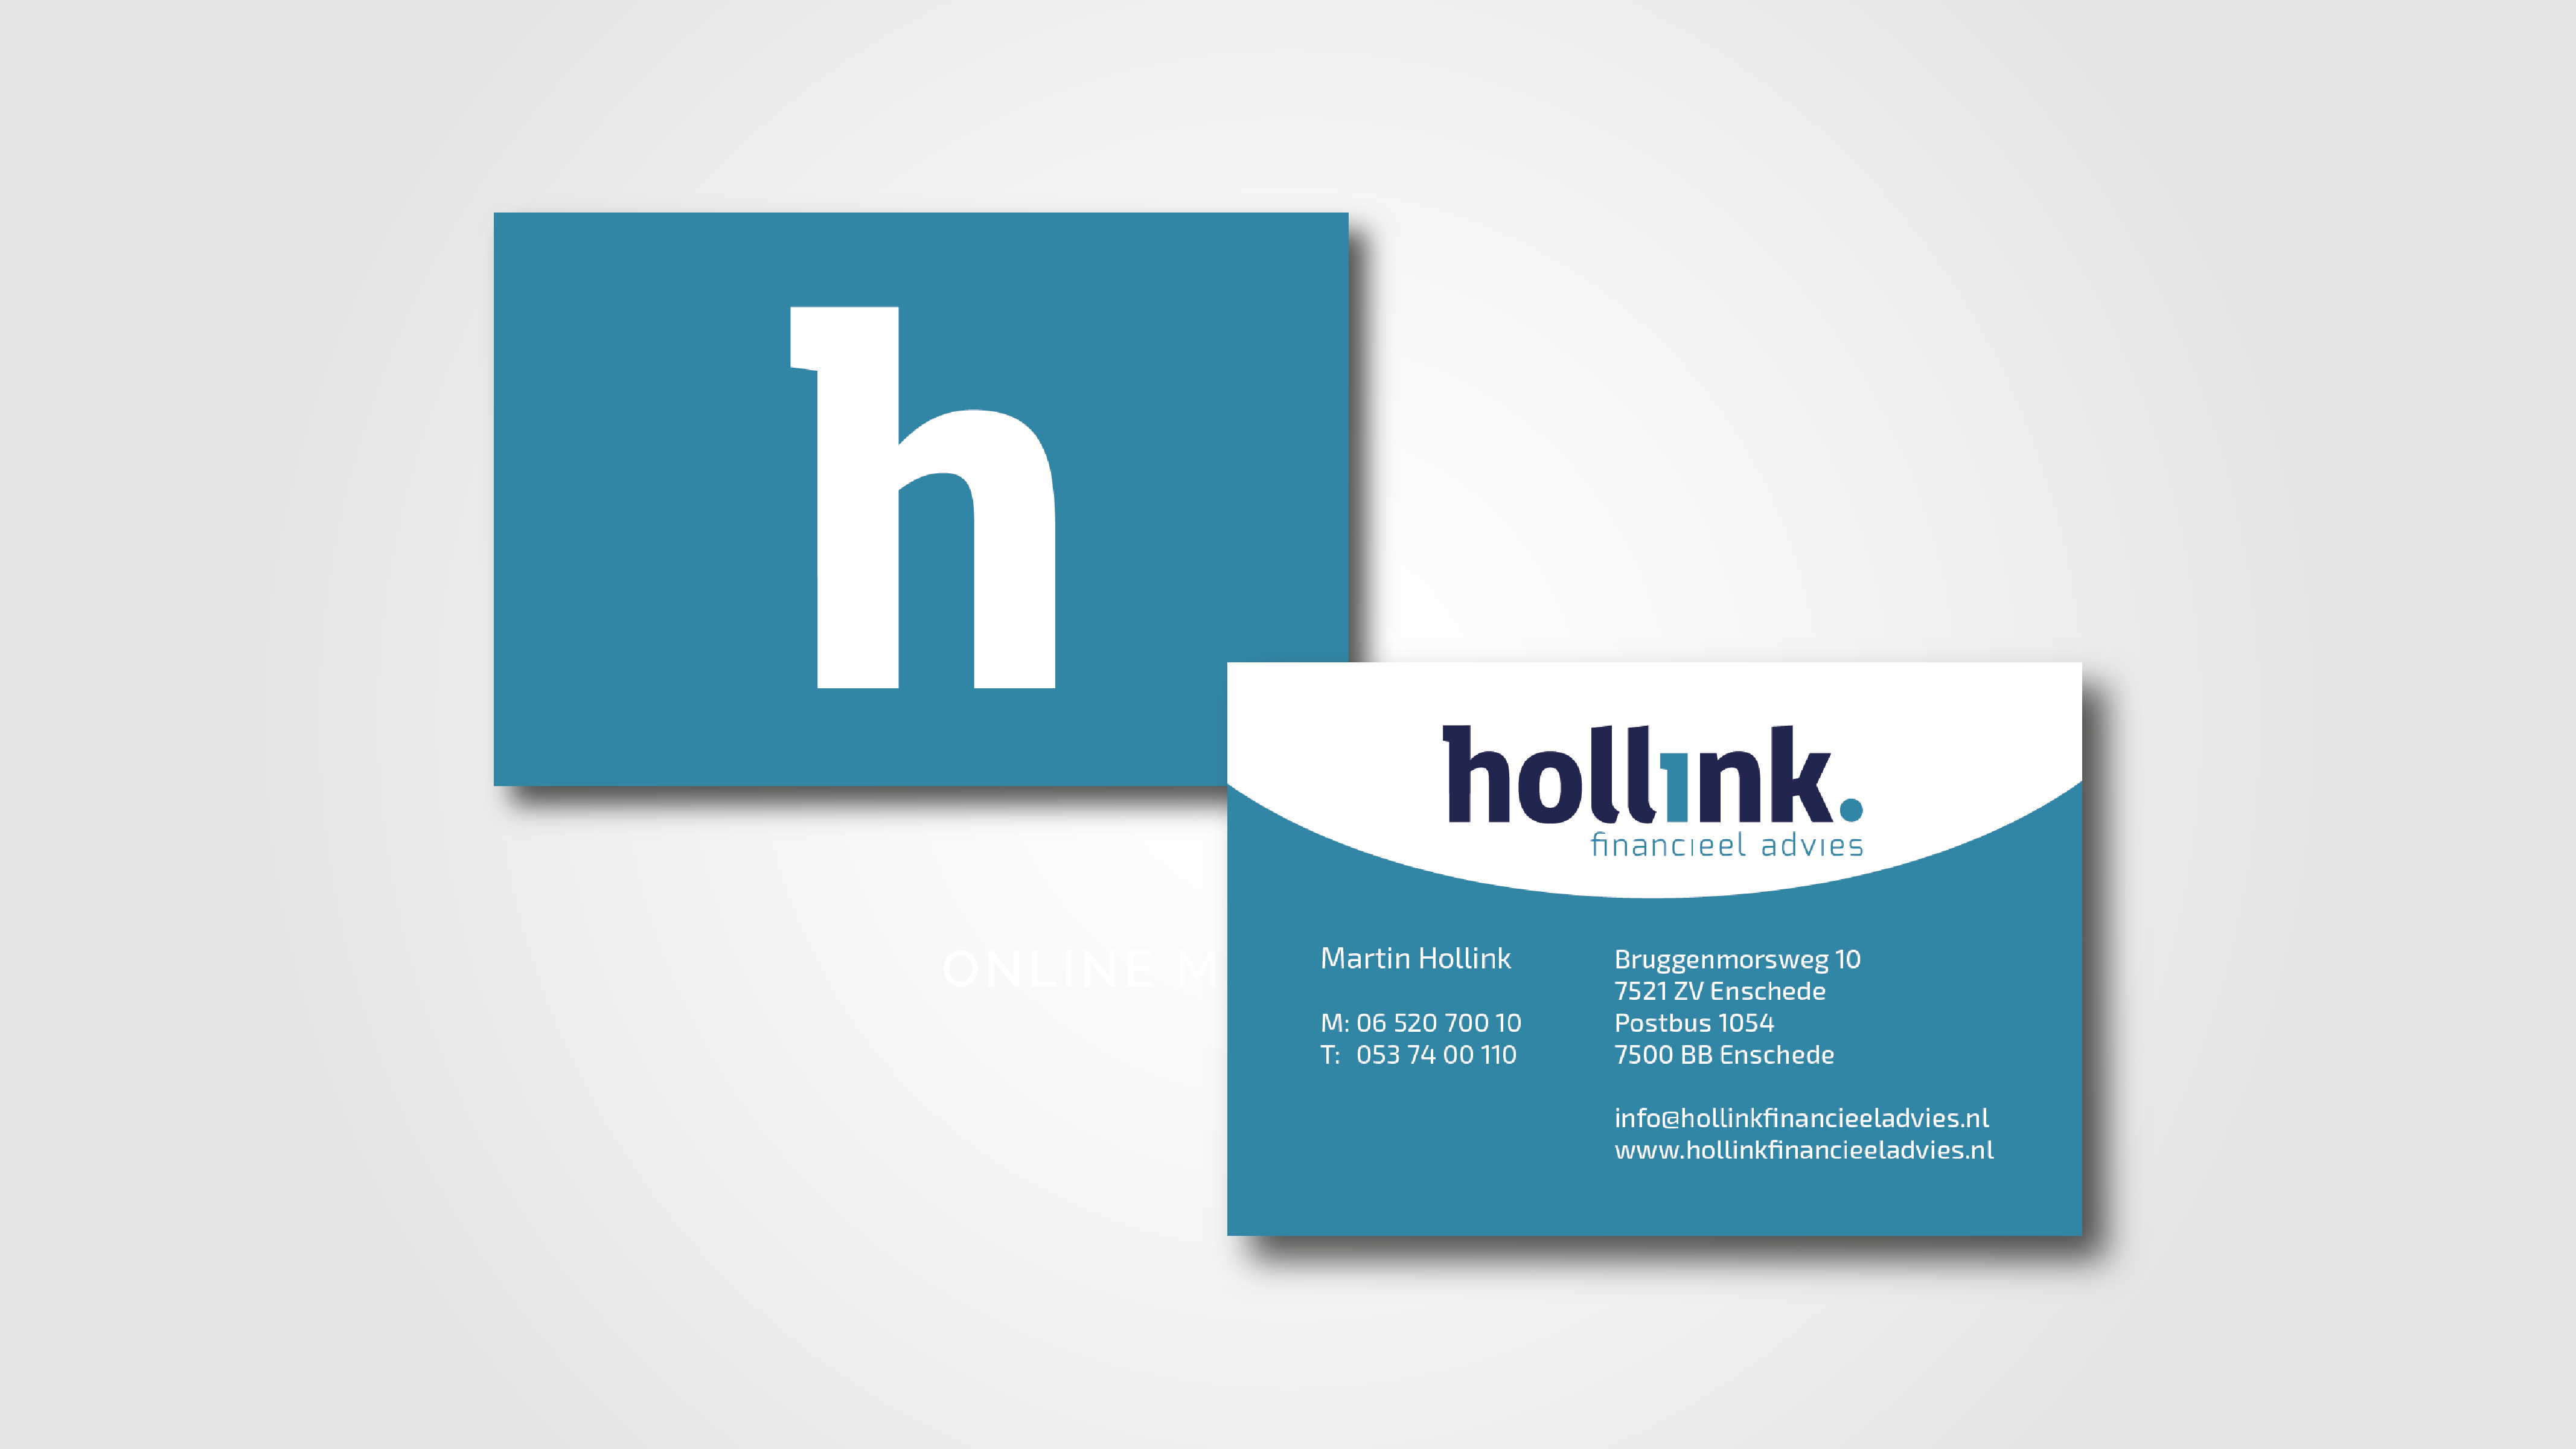 Hollink Financieel Advies | l Visitekaartjes | SQOOP Online Marketing